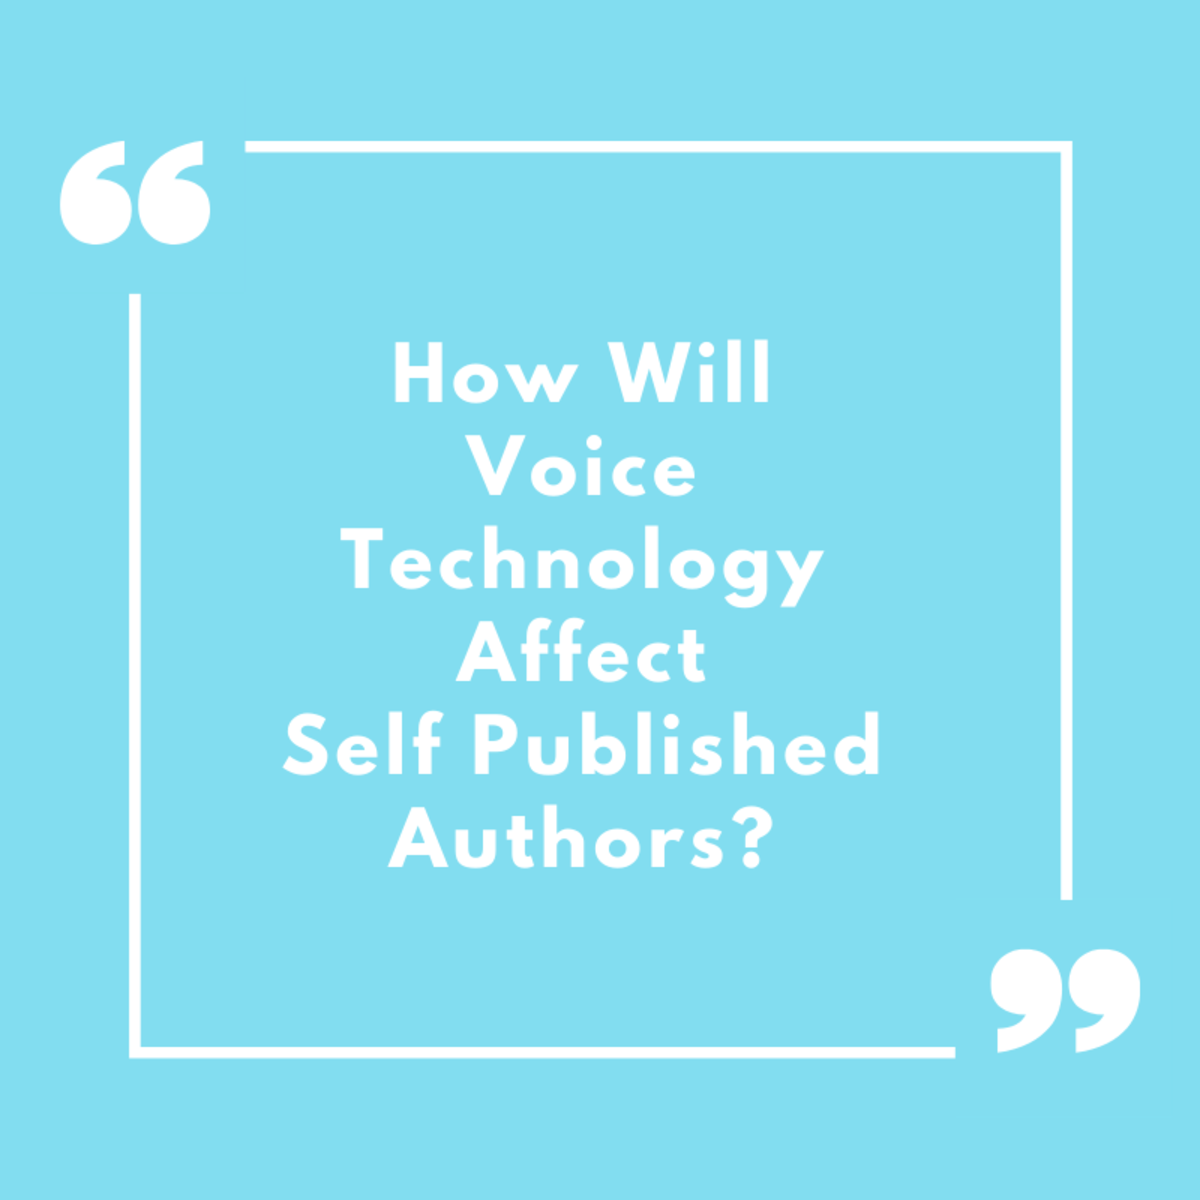 How Will Voice Technology Affect Self Published Authors?